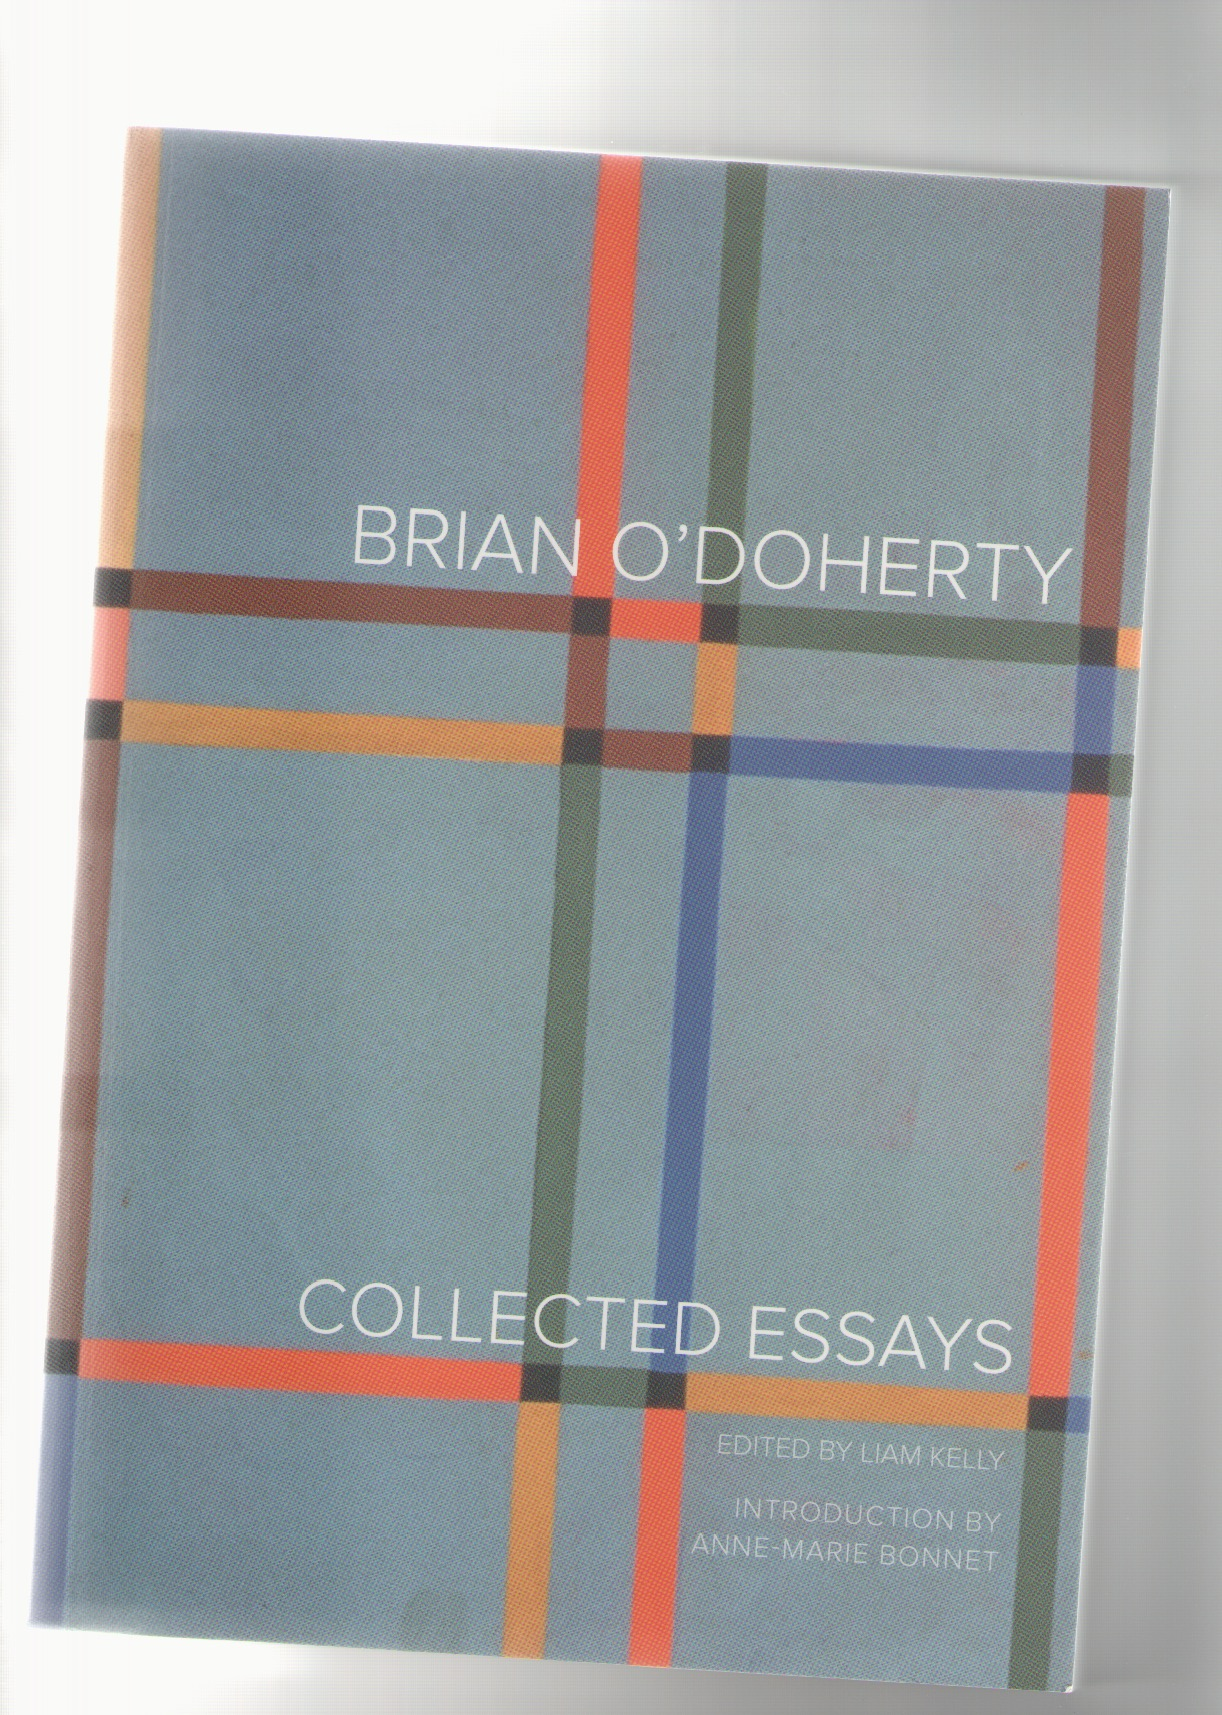 O'DOHERTY, Brian - Collected Essays